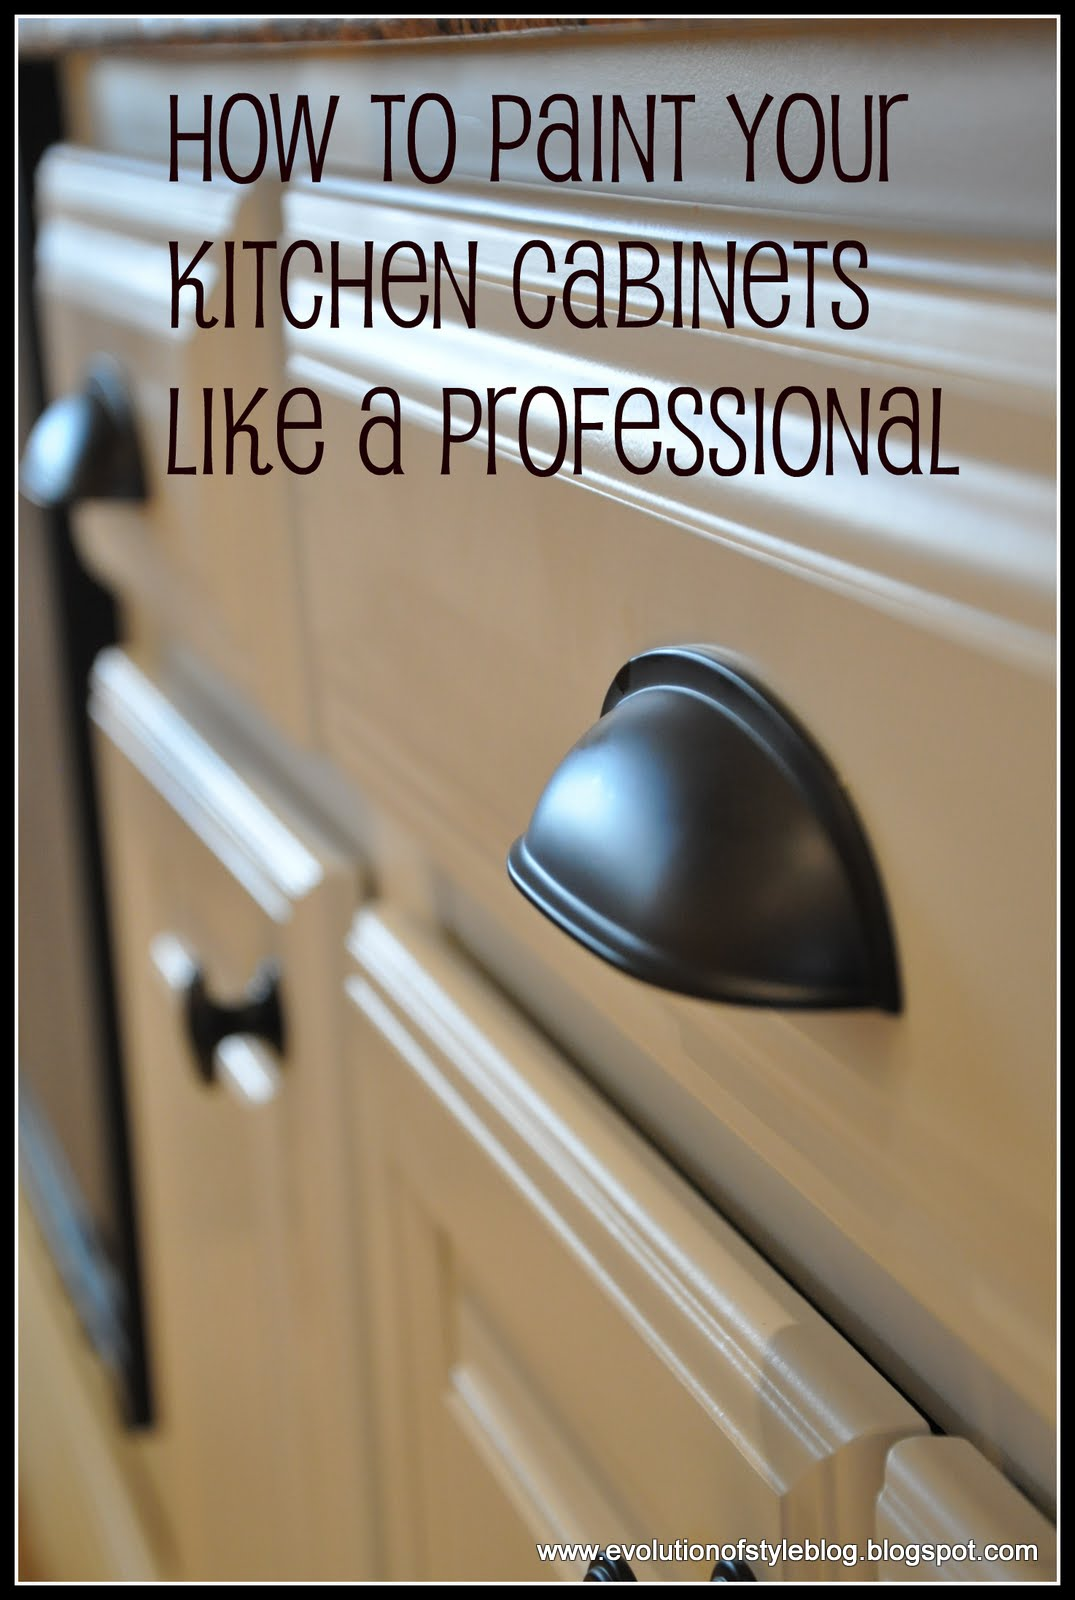 Best Paint Kitchen Cabinets How To Paint Your Kitchen Cabinets Like A Pro Evolution Of Style